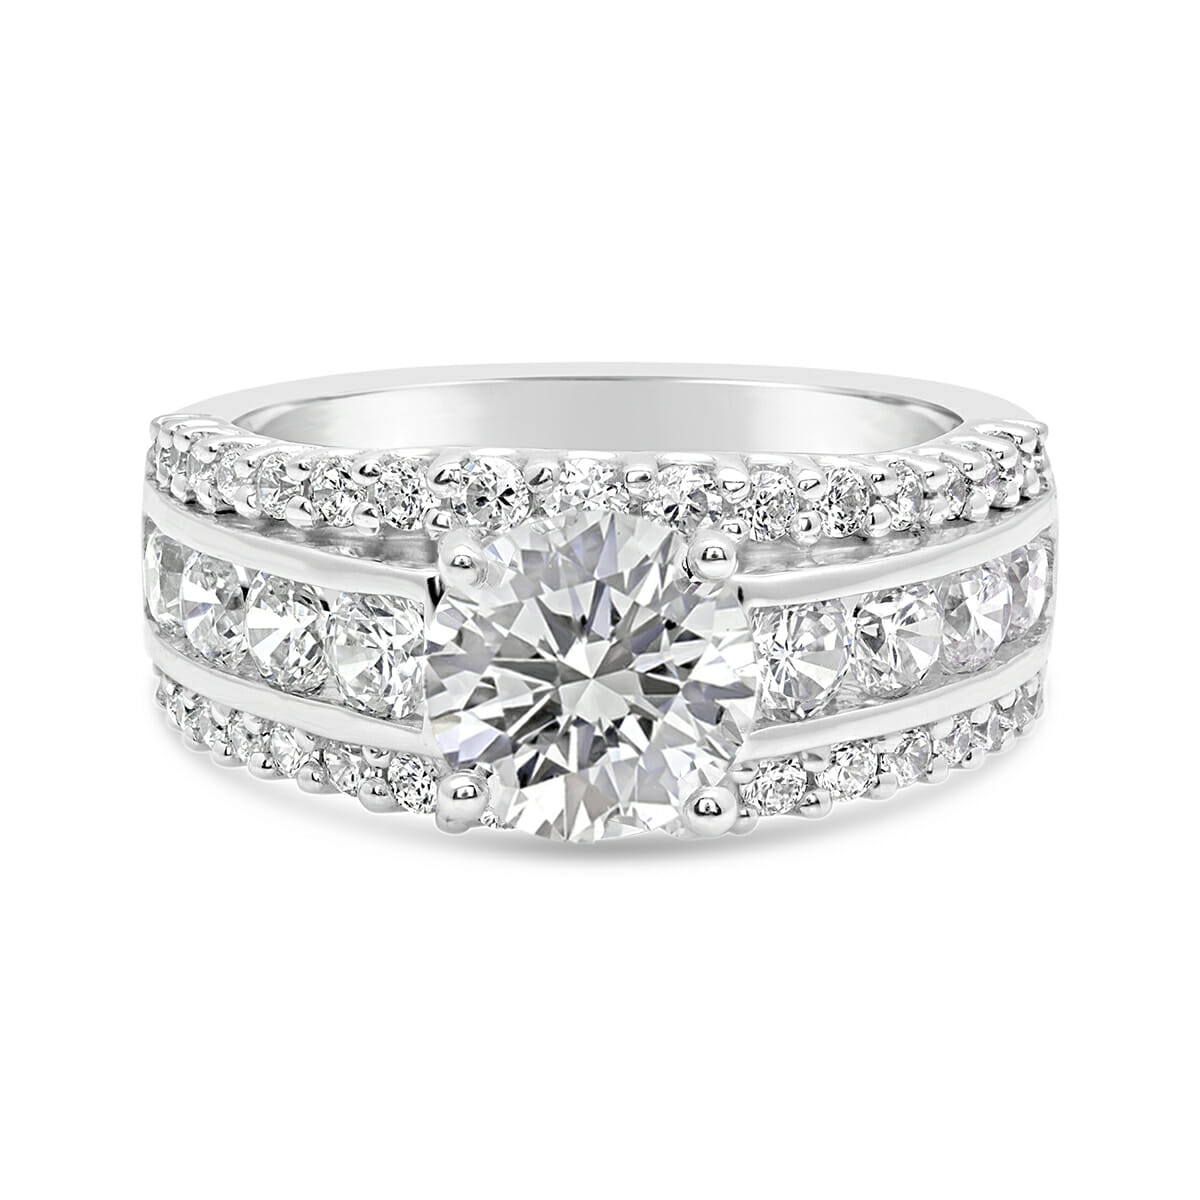 ring bands channel flat set collection the diamond engagment product engagement wm guys setting